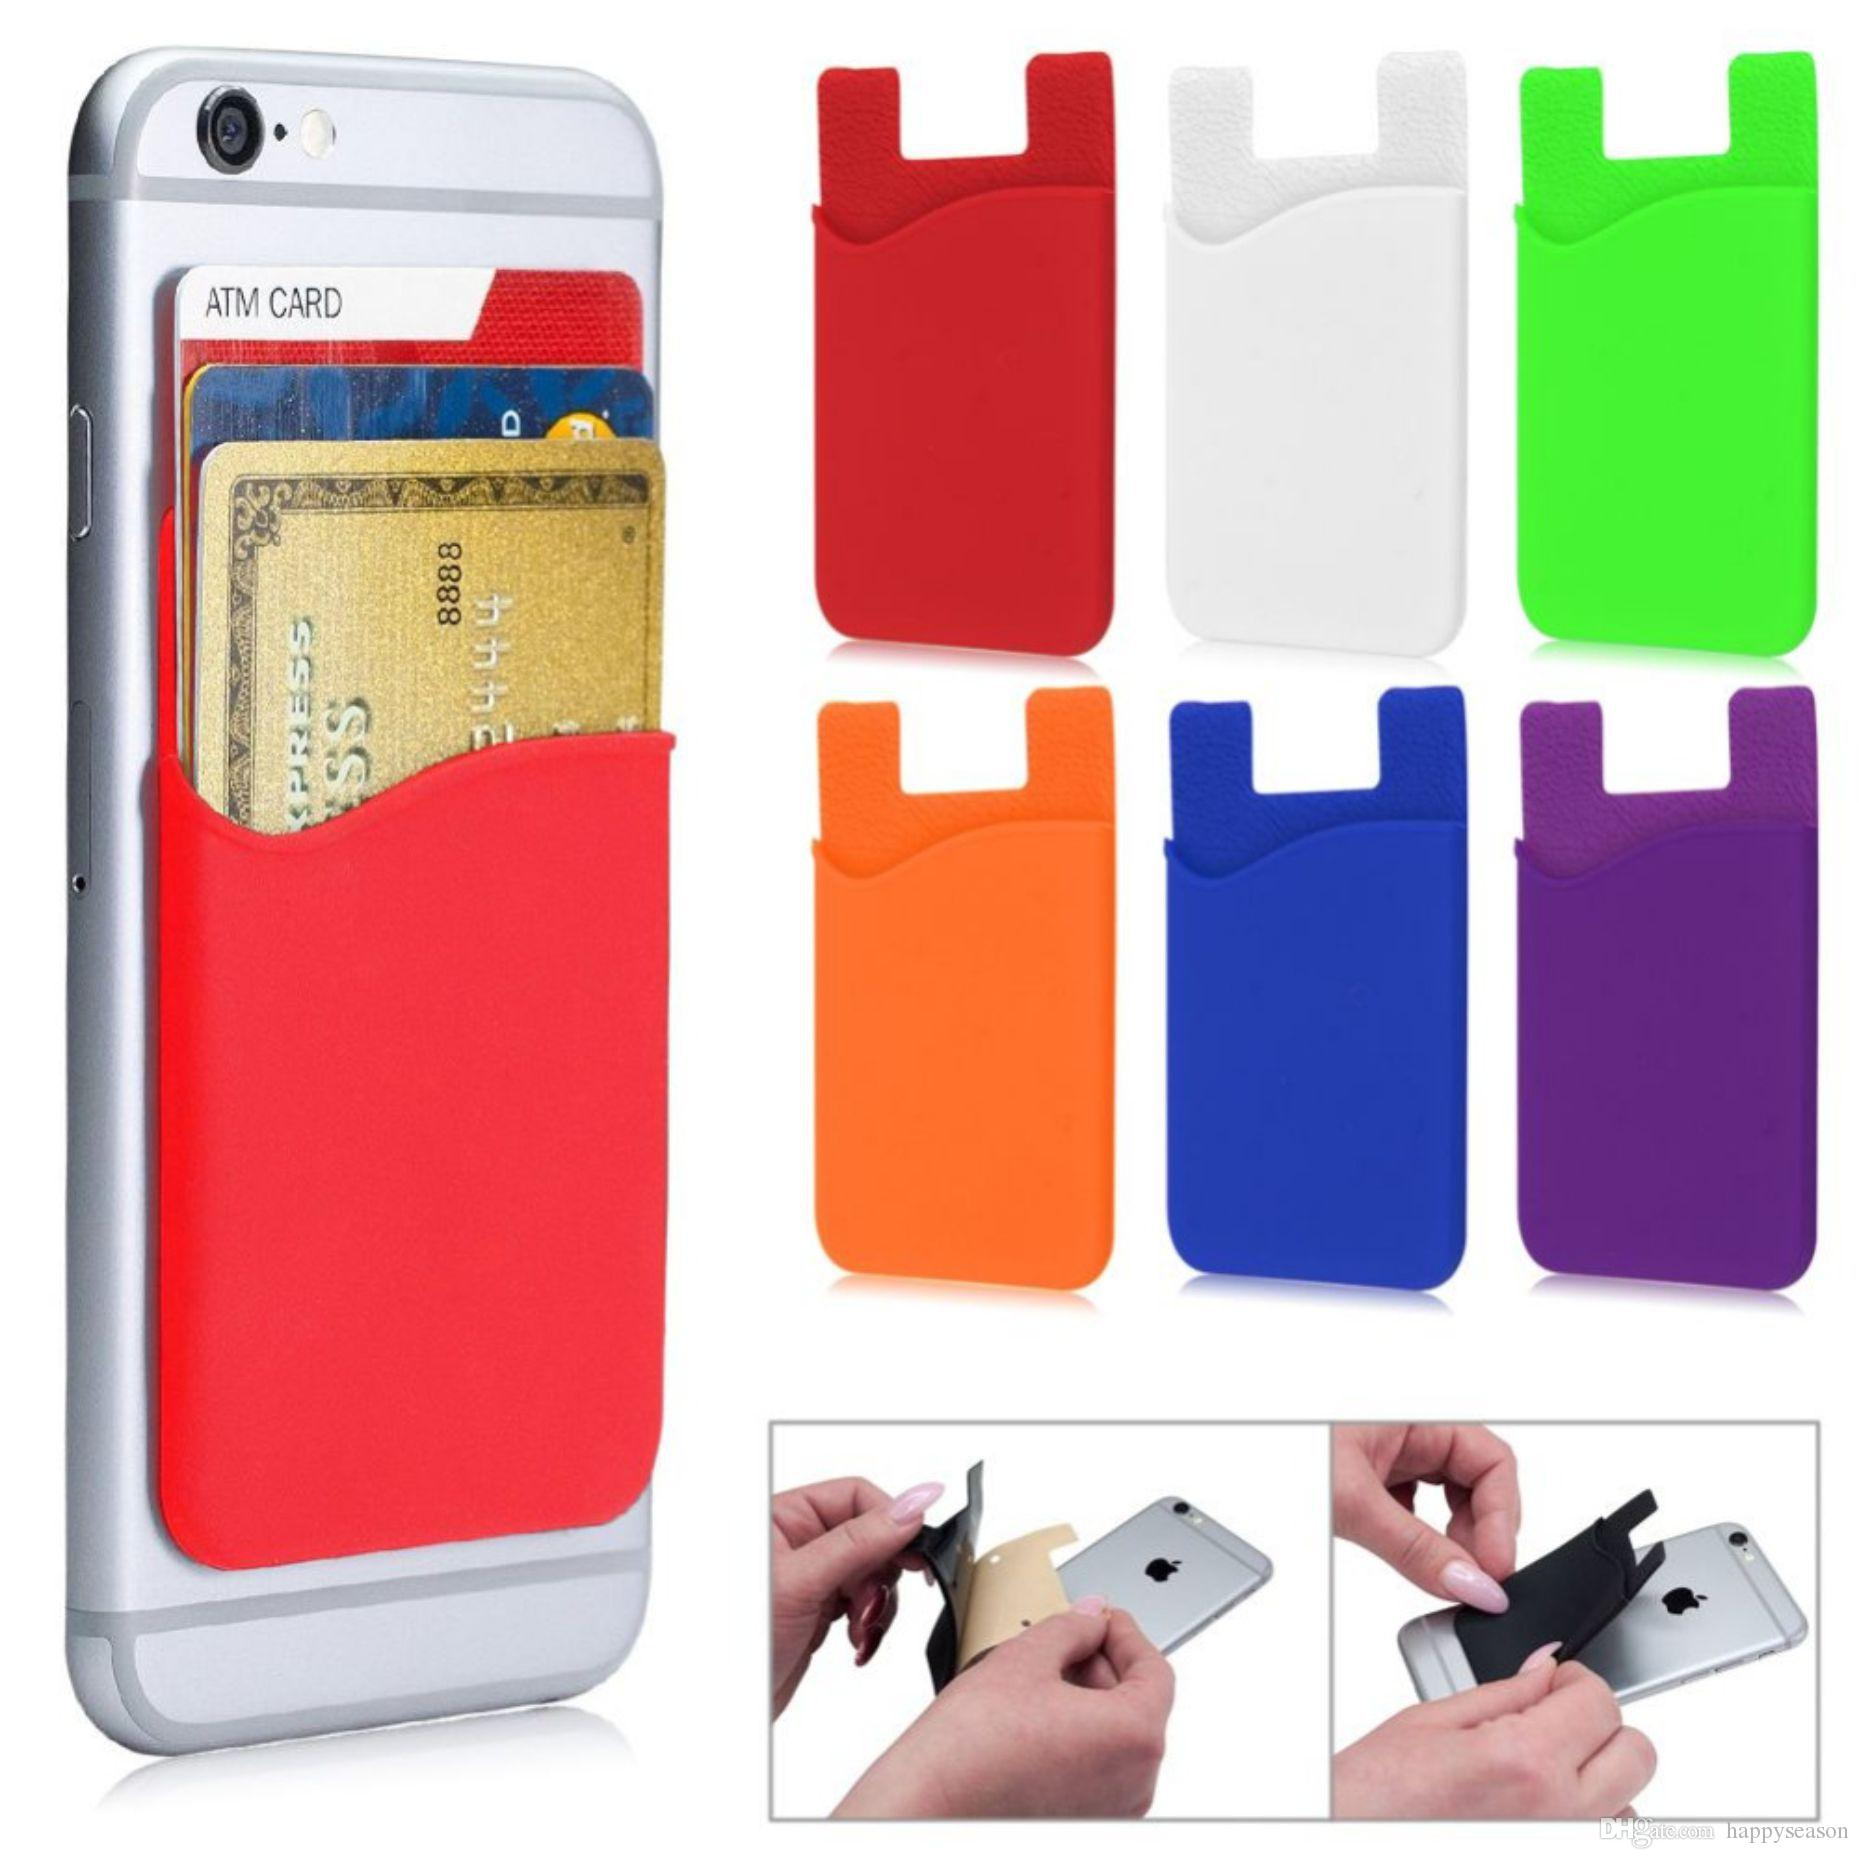 Wallet Credit Card Cash Holder Pouch Stick On Phone Pocket Sticker For  IPhone X 8 7 Samsung Universal 3m Glue Ballistic Cell Phone Cases Camo Cell  Phone ... 5d21c1f19590